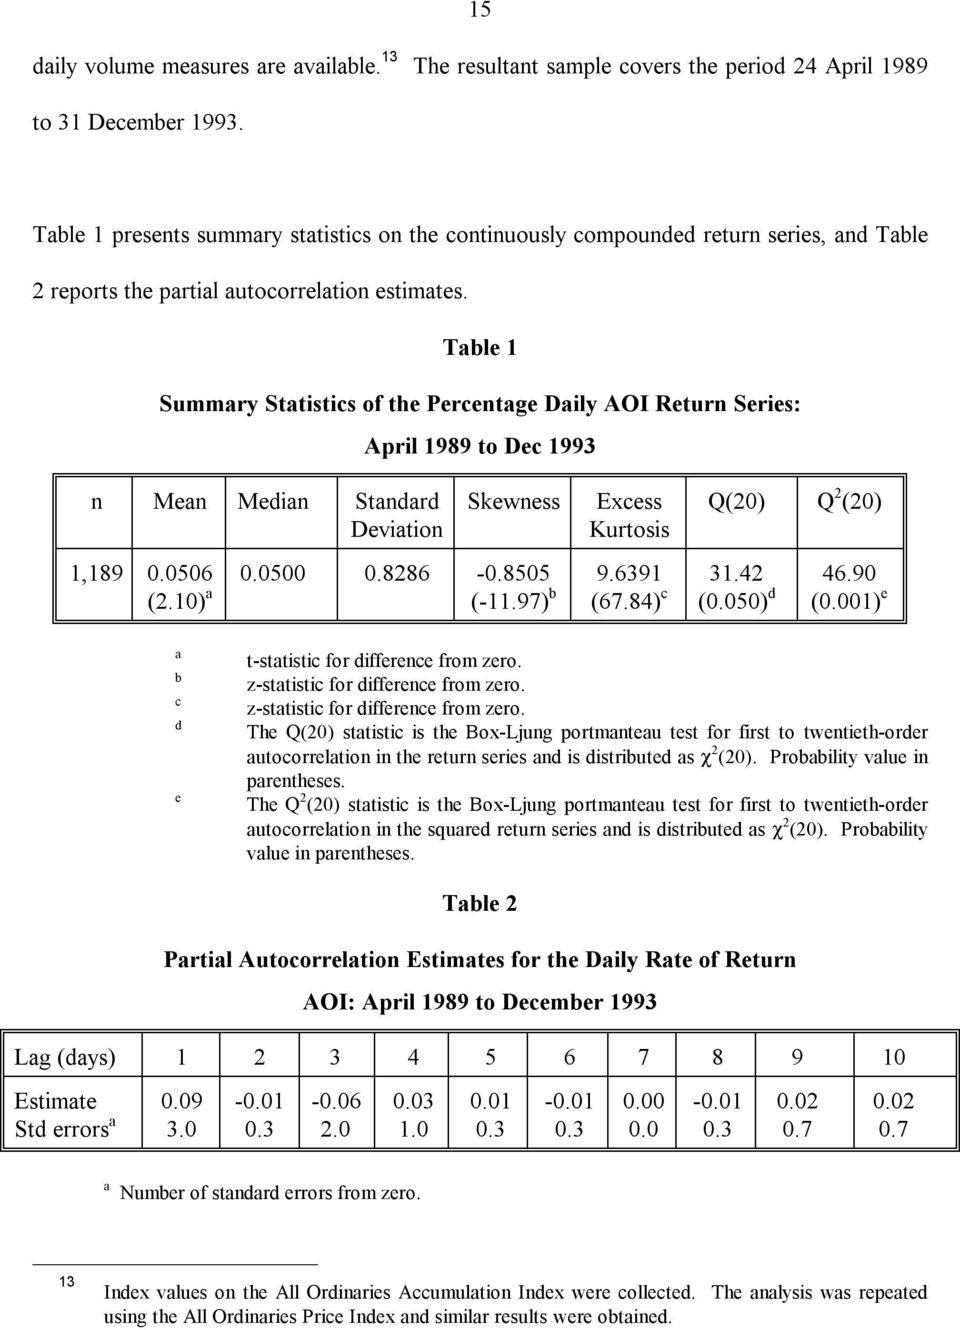 Table 1 Summary Statistics of the Percentage Daily AOI Return Series: n Mean Median Standard Deviation April 1989 to Dec 1993 Skewness Excess Kurtosis Q(20) Q 2 (20) 1,189 0.0506 (2.10) a 0.0500 0.